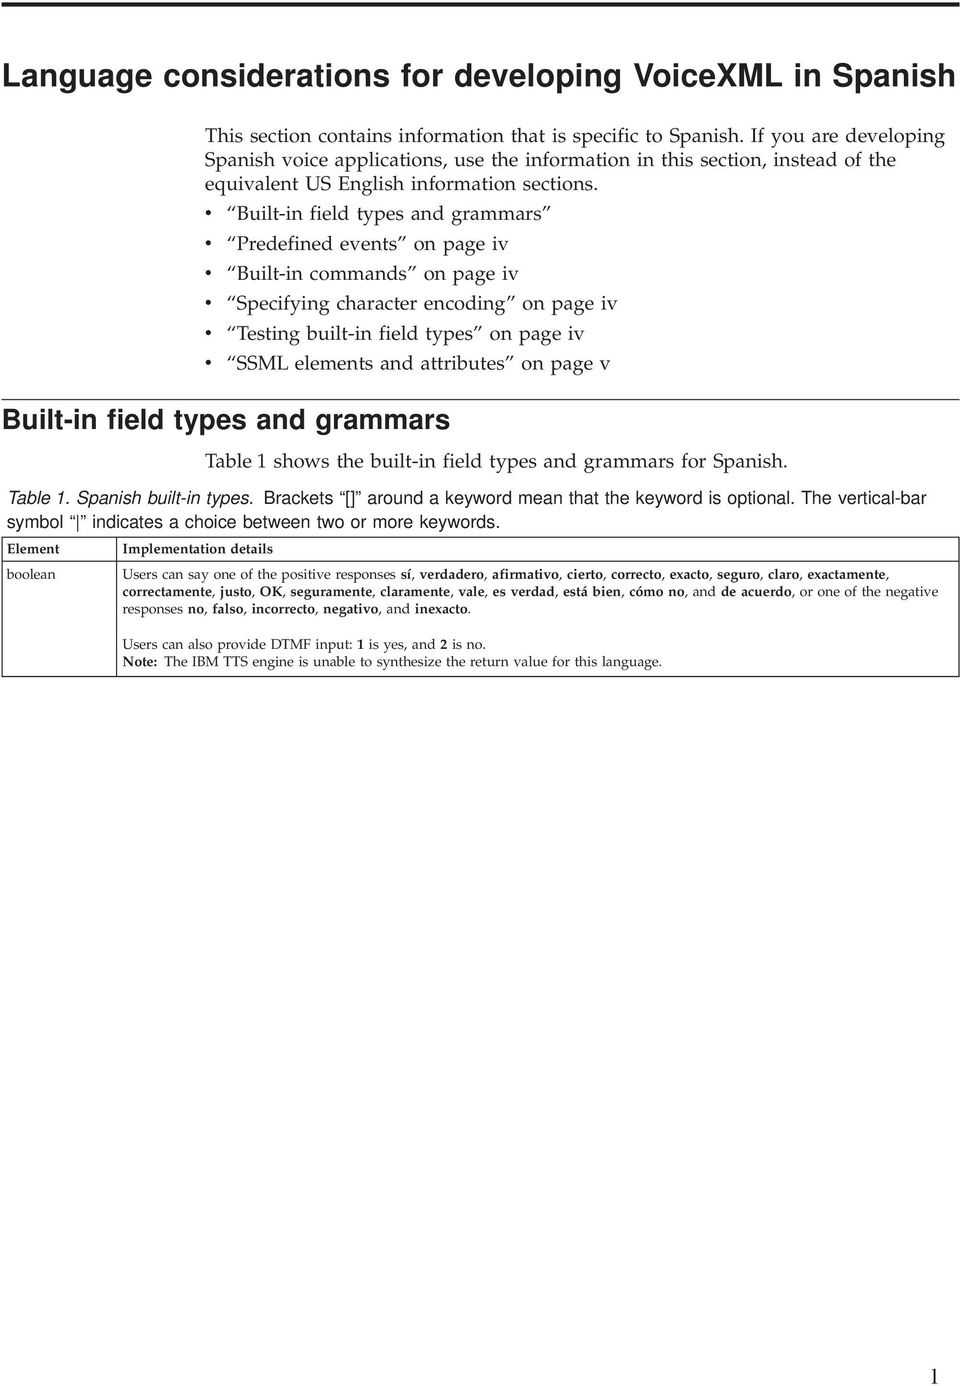 v Built-in field types and grammars v Predefined events on page iv v Built-in commands on page iv v Specifying character encoding on page iv v Testing built-in field types on page iv v SSML elements